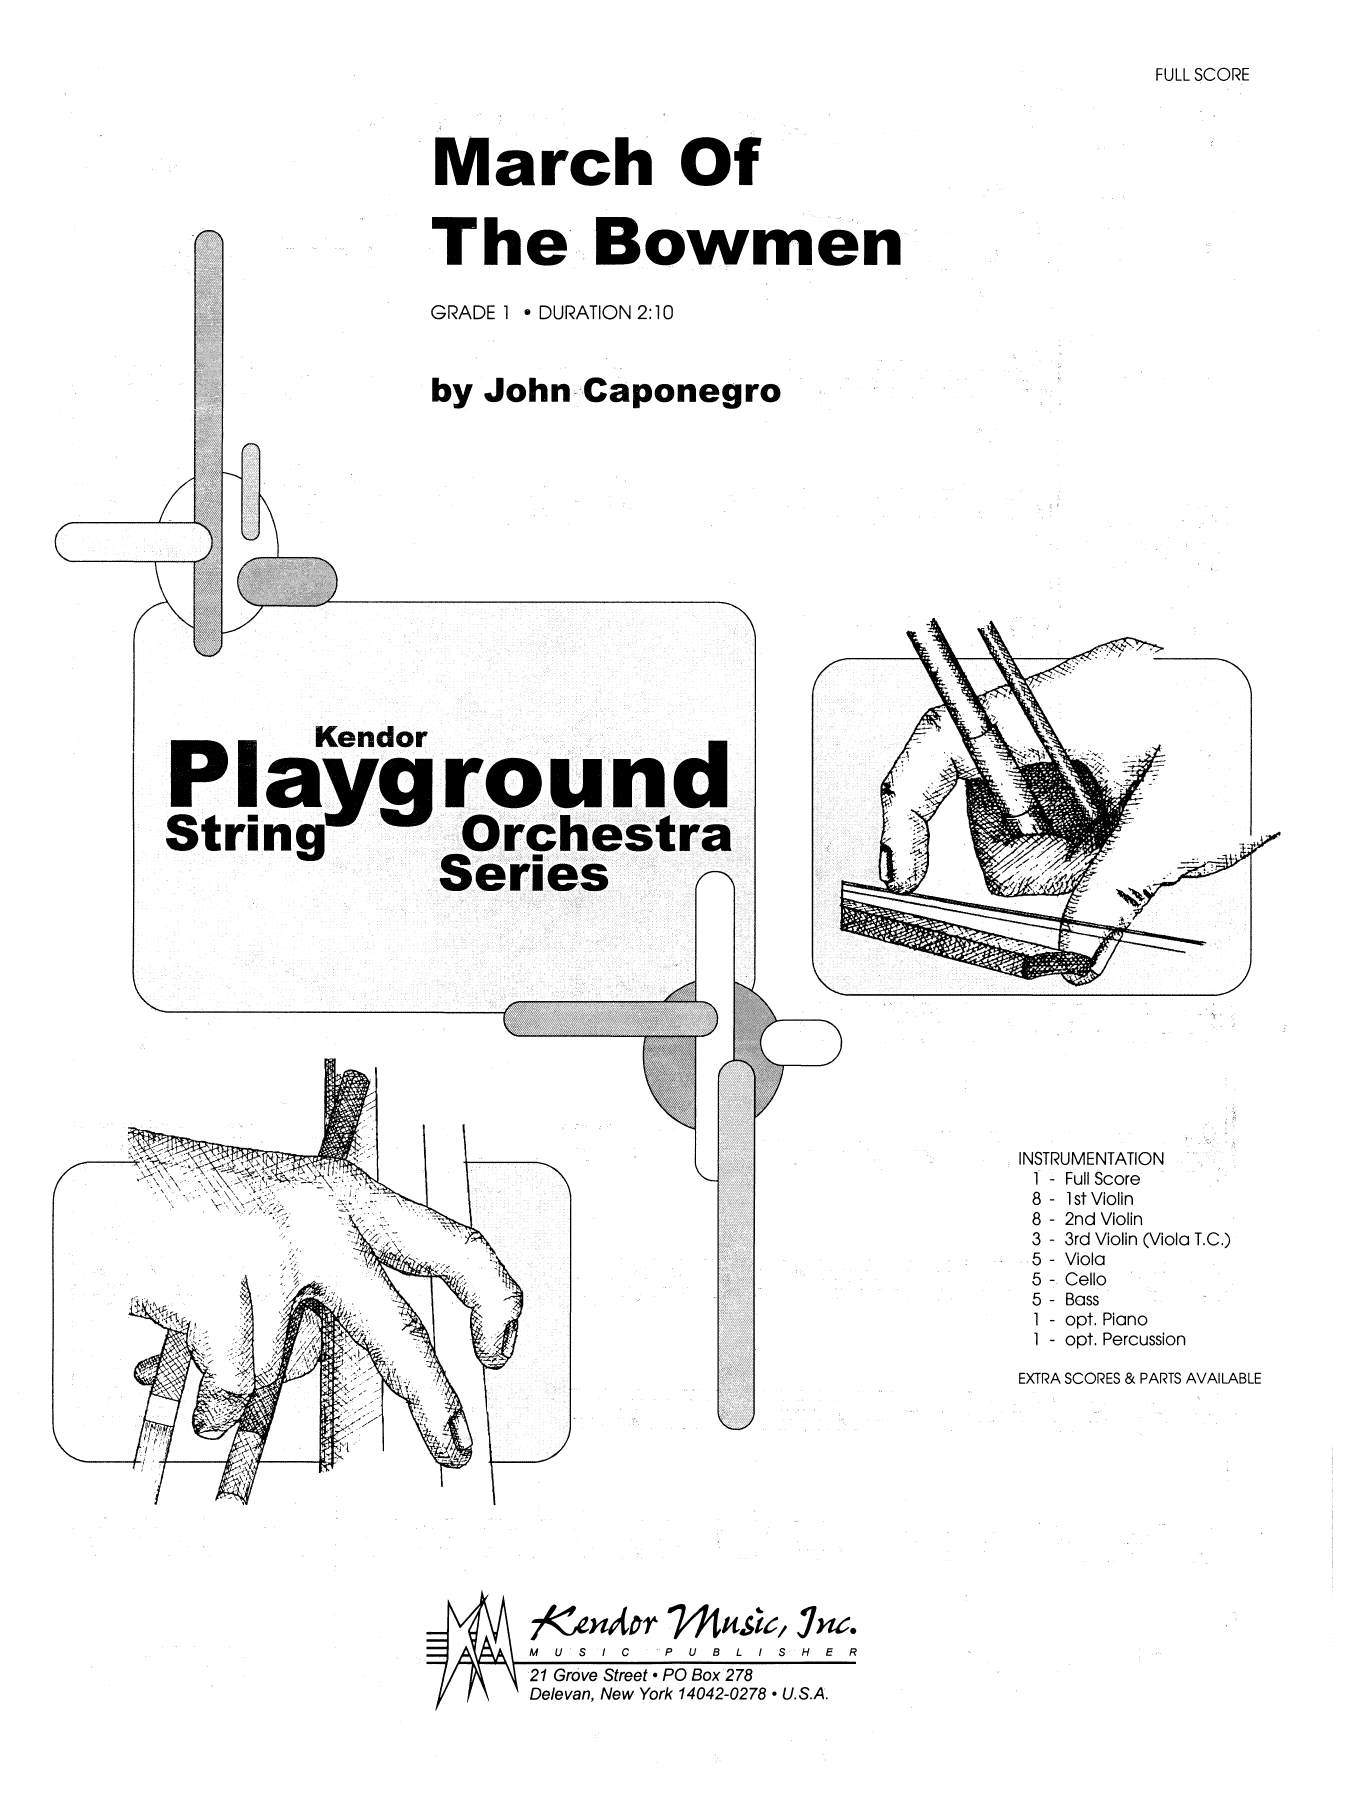 March Of The Bowmen (COMPLETE) sheet music for orchestra by John Caponegro. Score Image Preview.